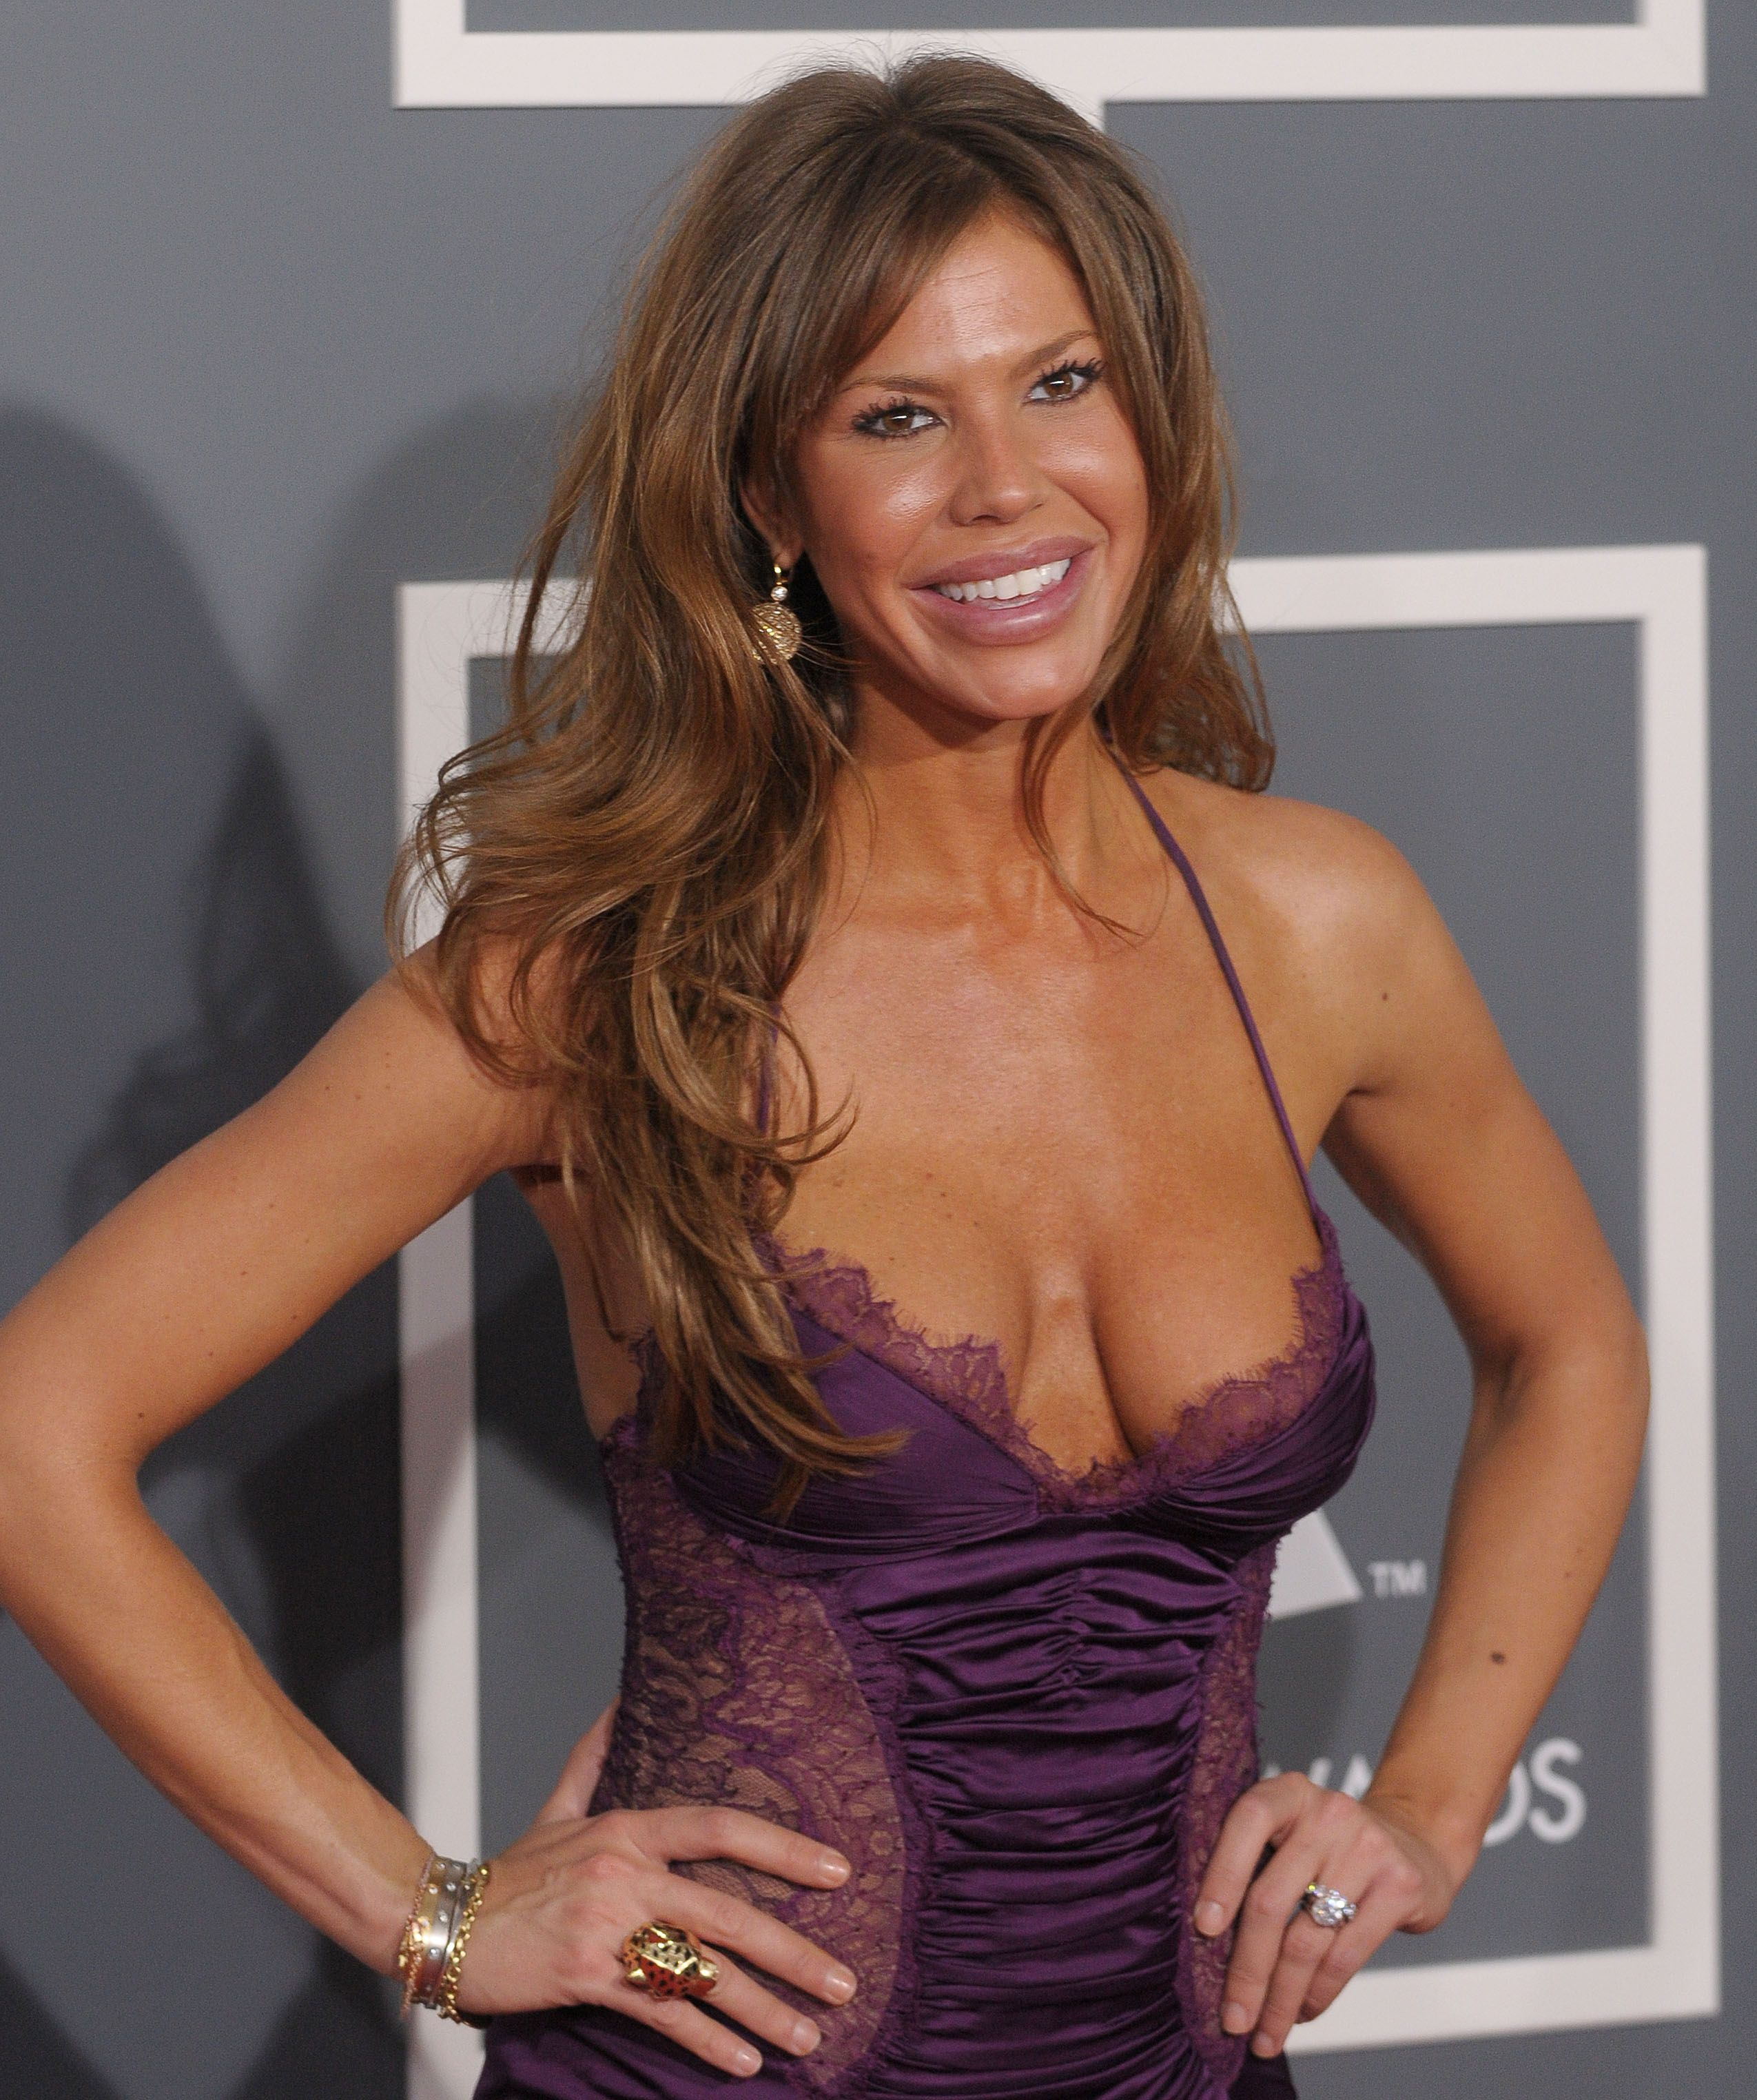 New Nikki Cox Nude Photos Have Been Leaked Online See The Actress Exposed Pics And Video